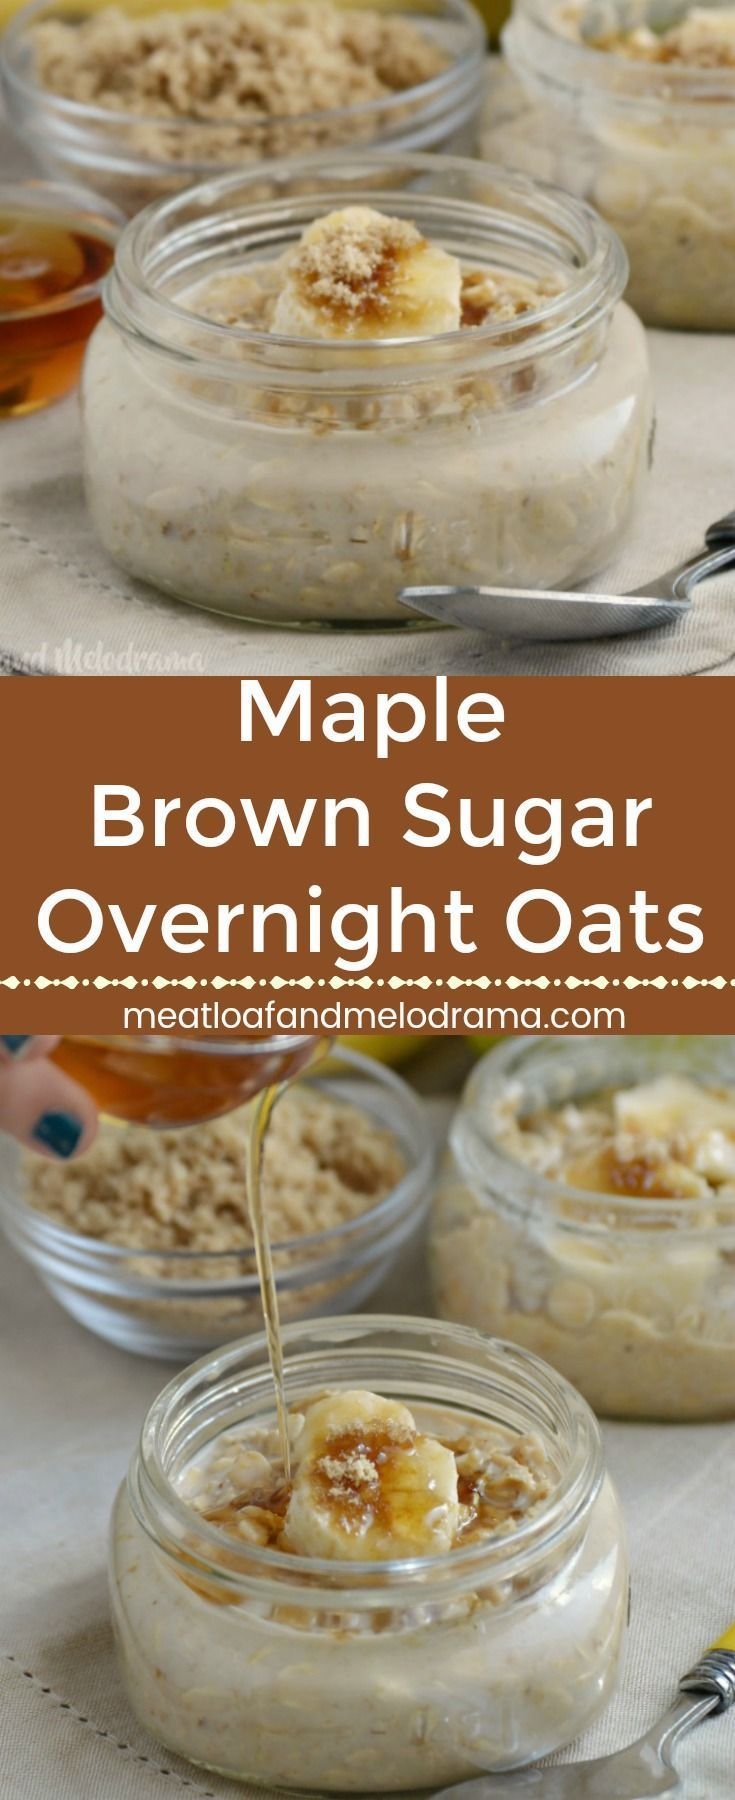 Maple Brown Sugar Overnight Oats - Meatloaf and Melodrama